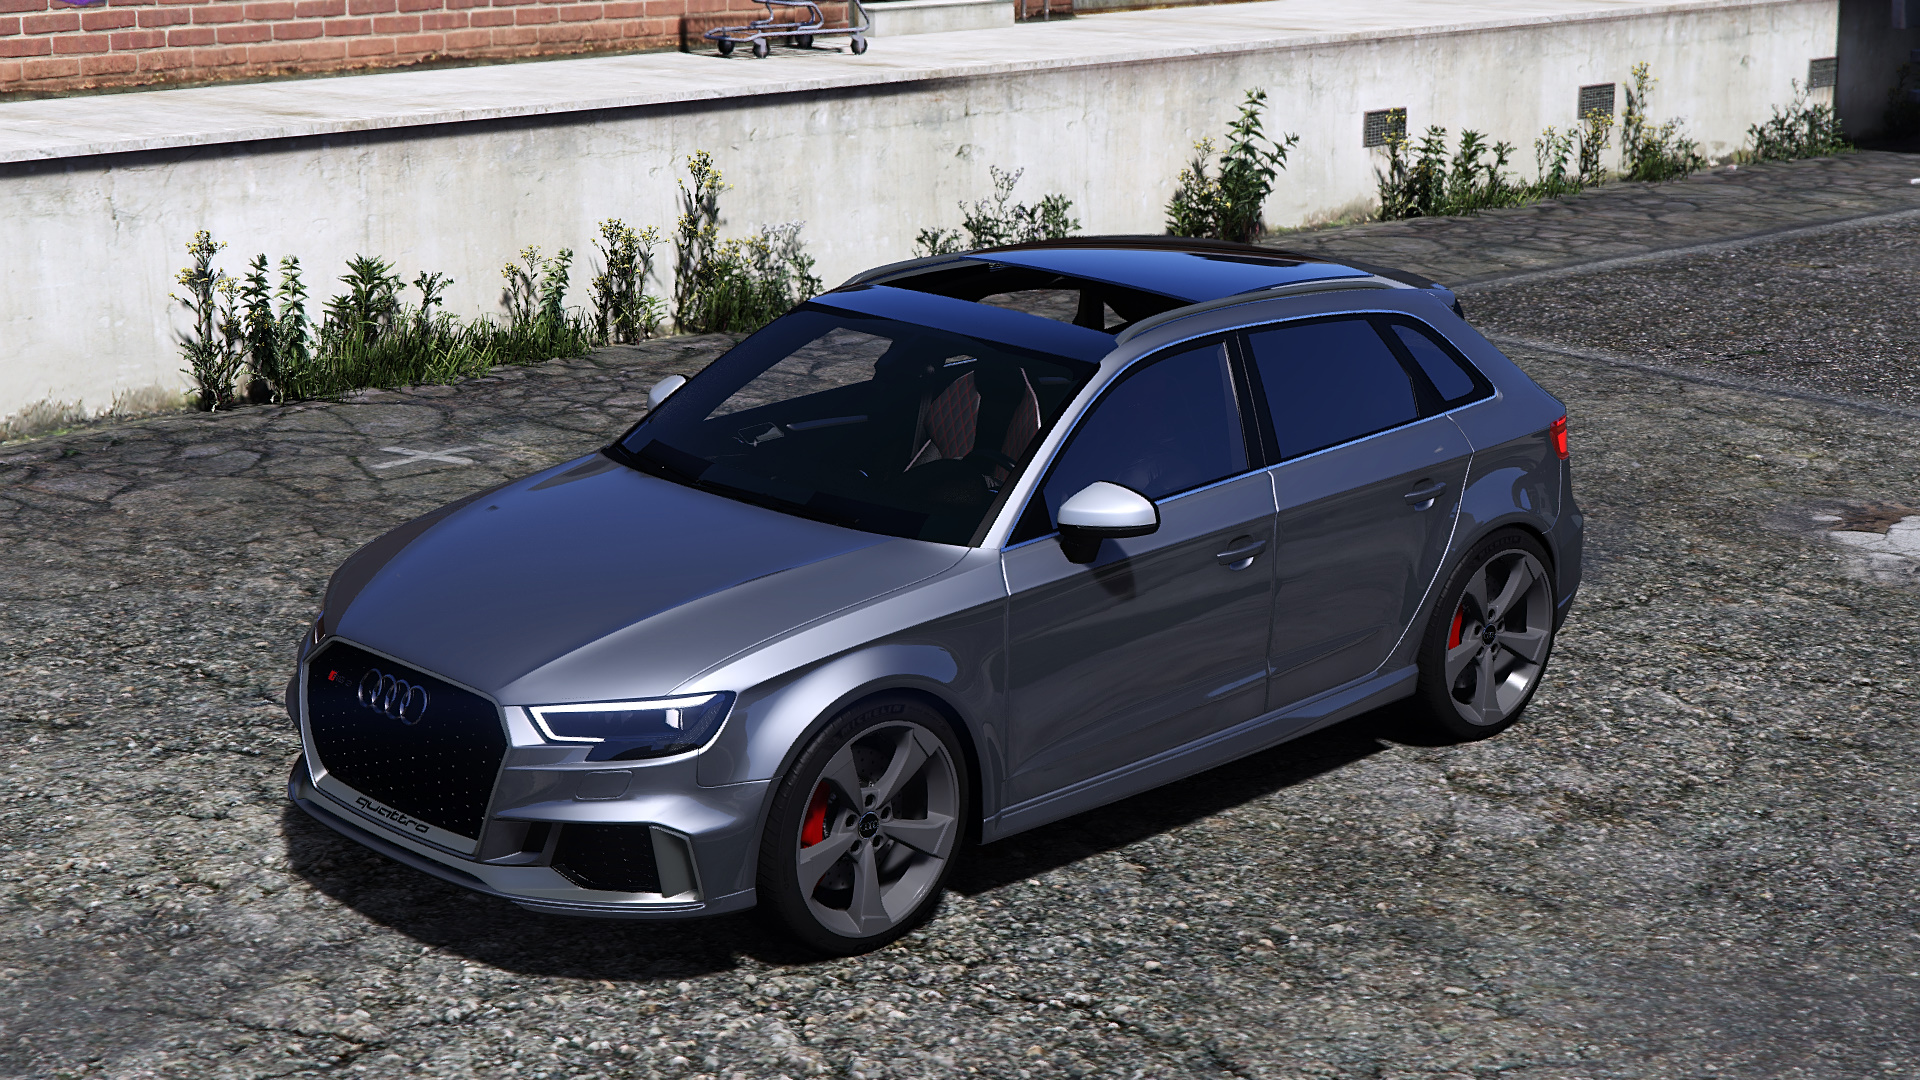 release vehicle audi rs3 2018 sportback gta5 forums. Black Bedroom Furniture Sets. Home Design Ideas